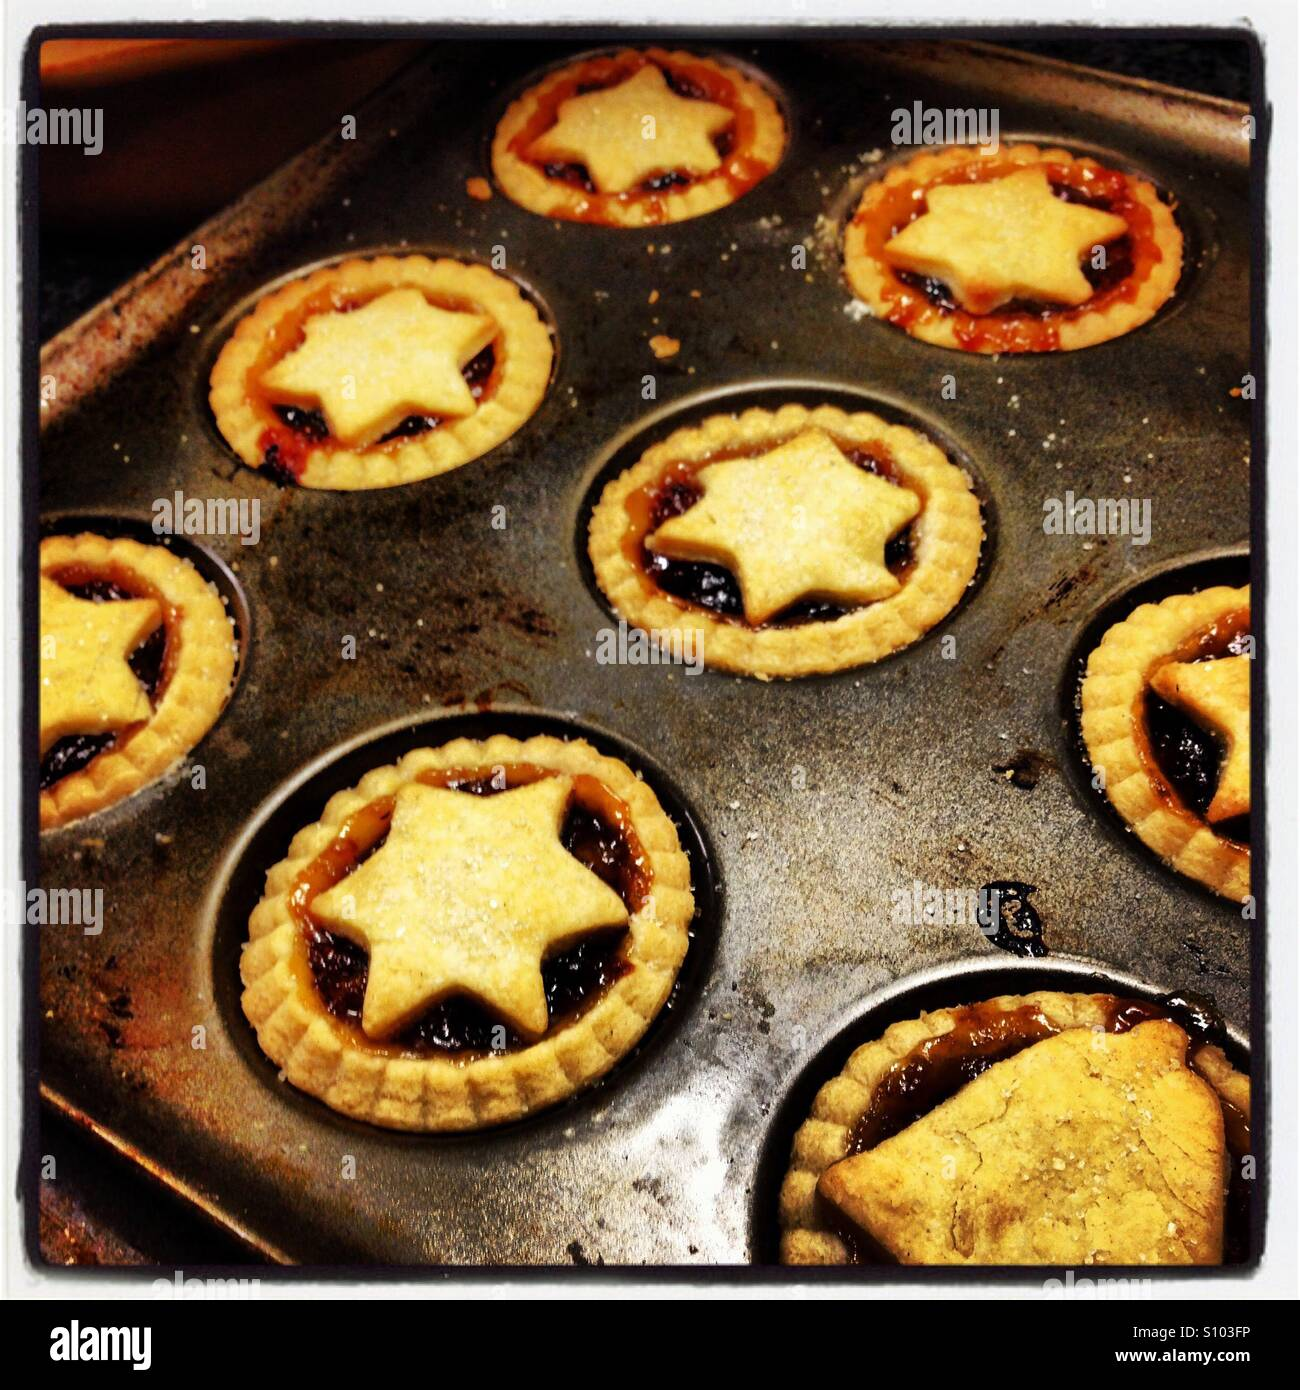 Mince pies topped with pastry stars - Stock Image